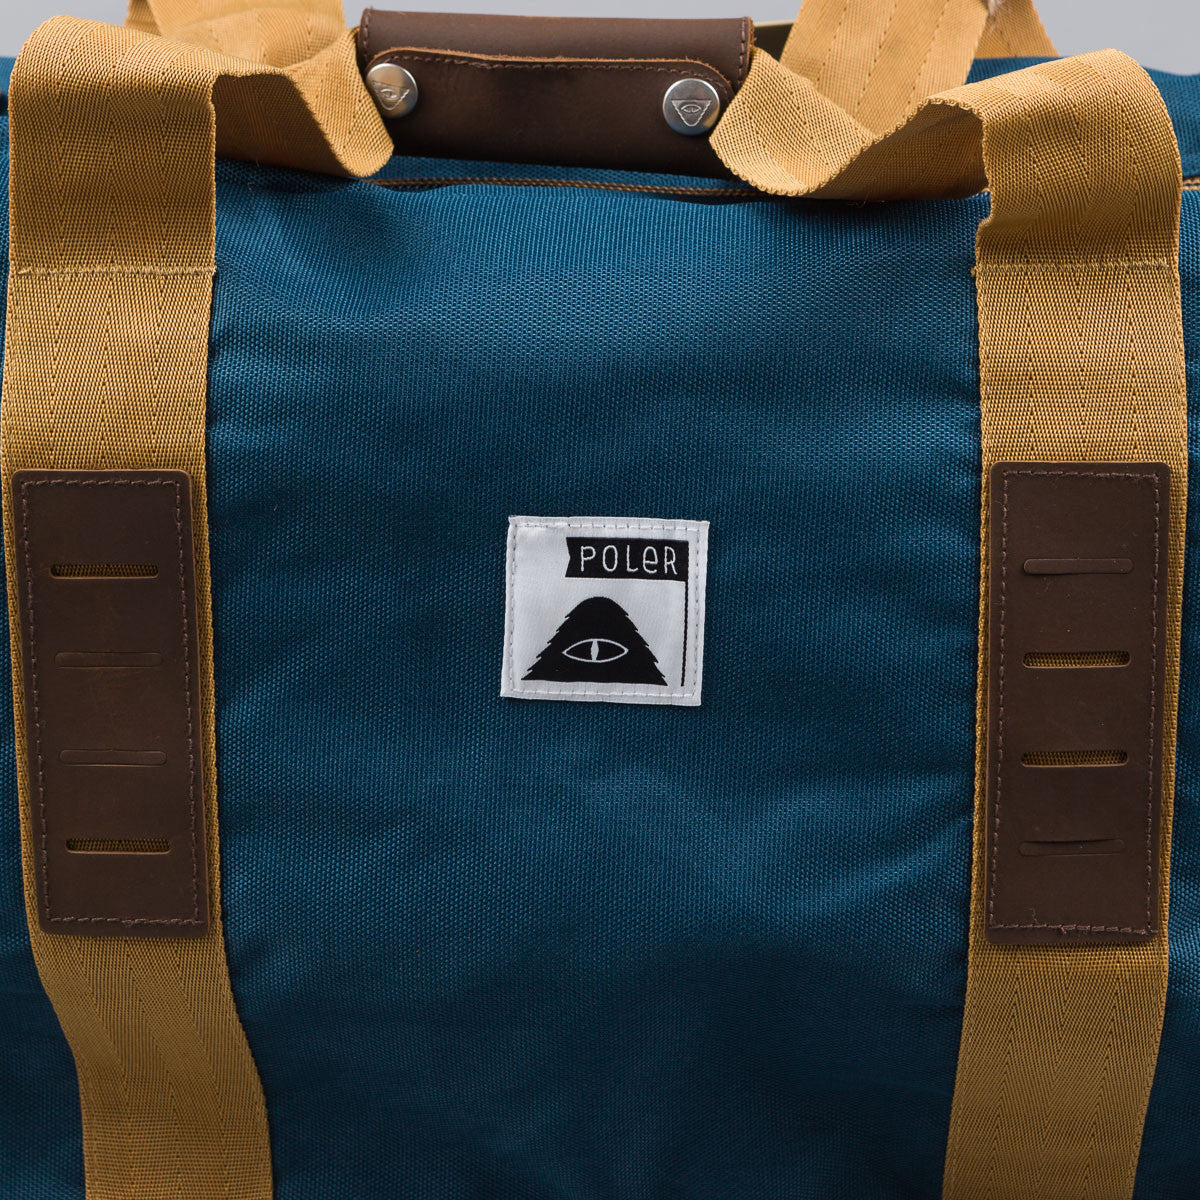 Poler Carry On Duffel Bag - Blue Steel